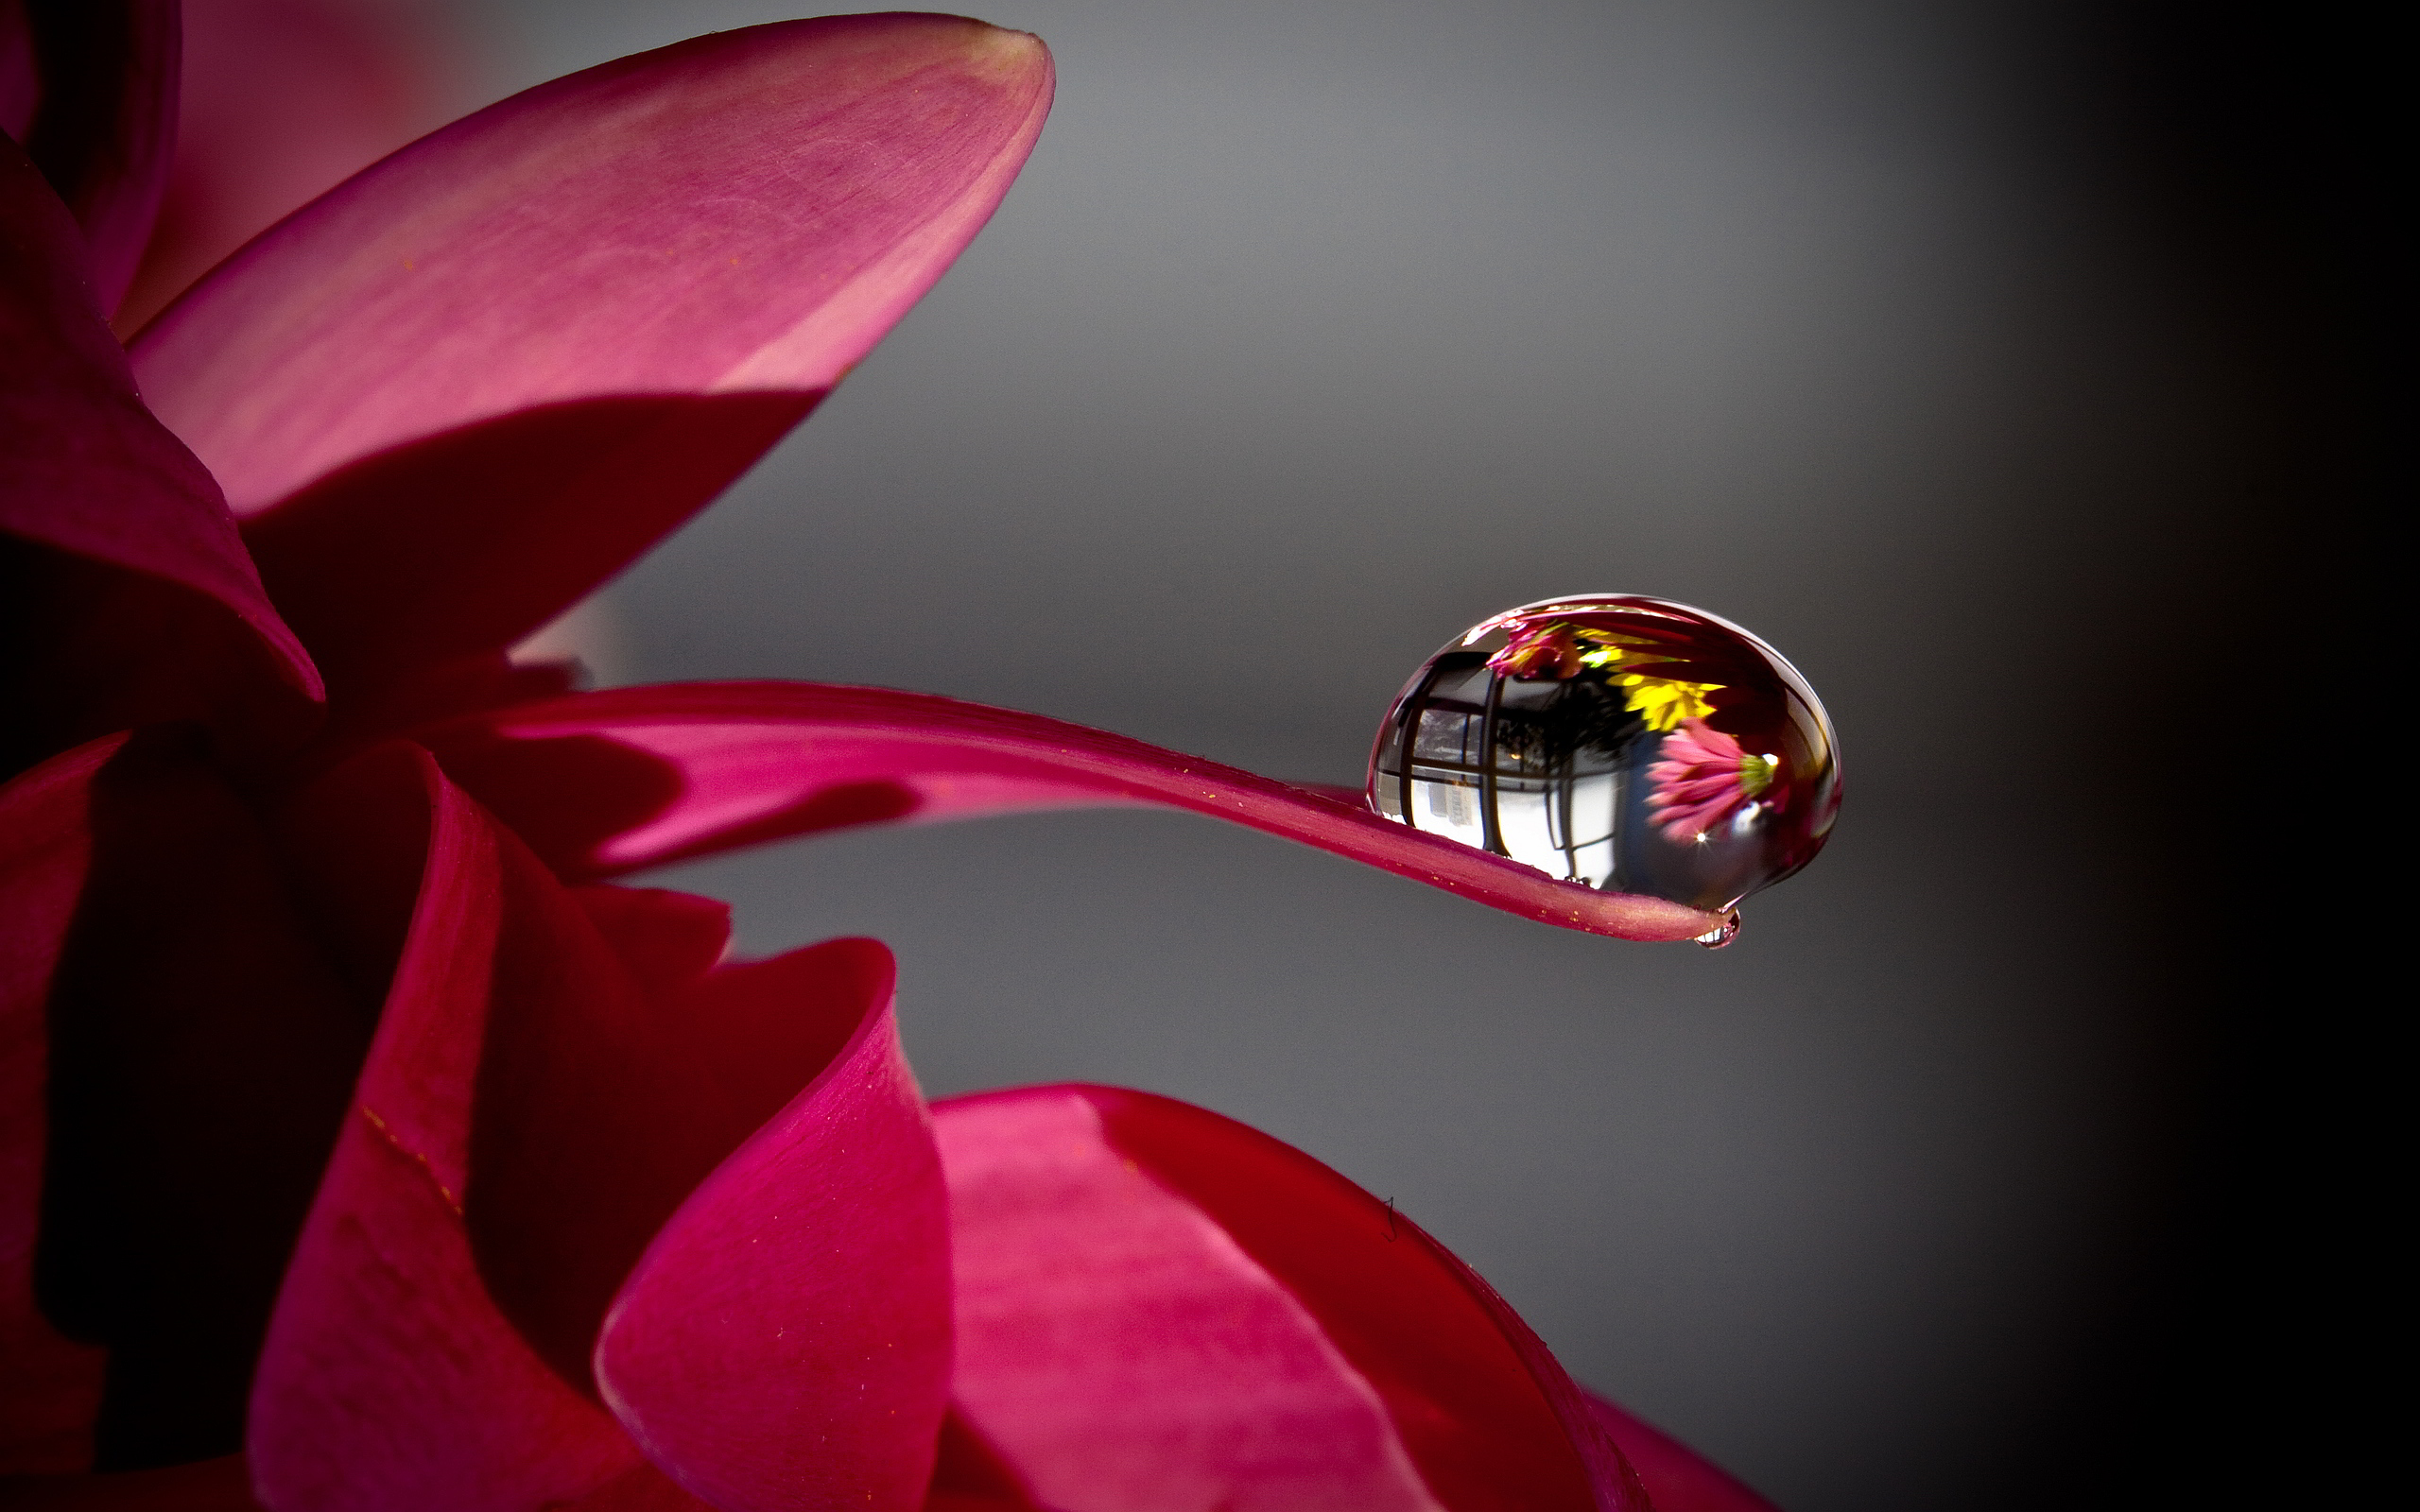 Water Drop On Flower Petal